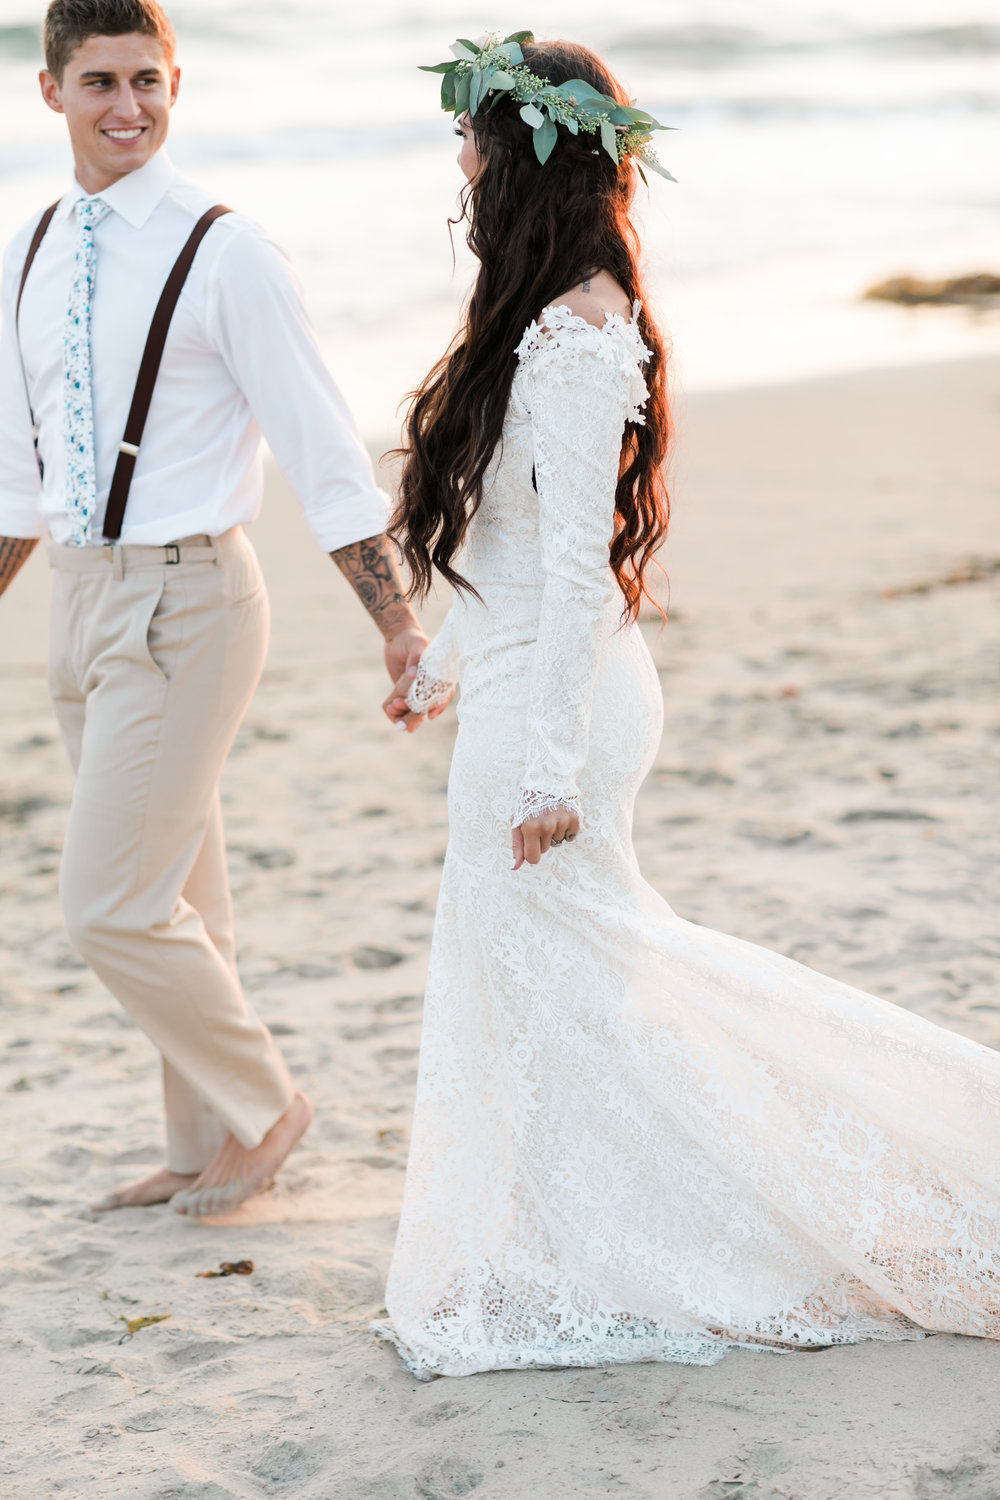 Destination Beach Wedding_Valorie Darling Photography-2875.jpg